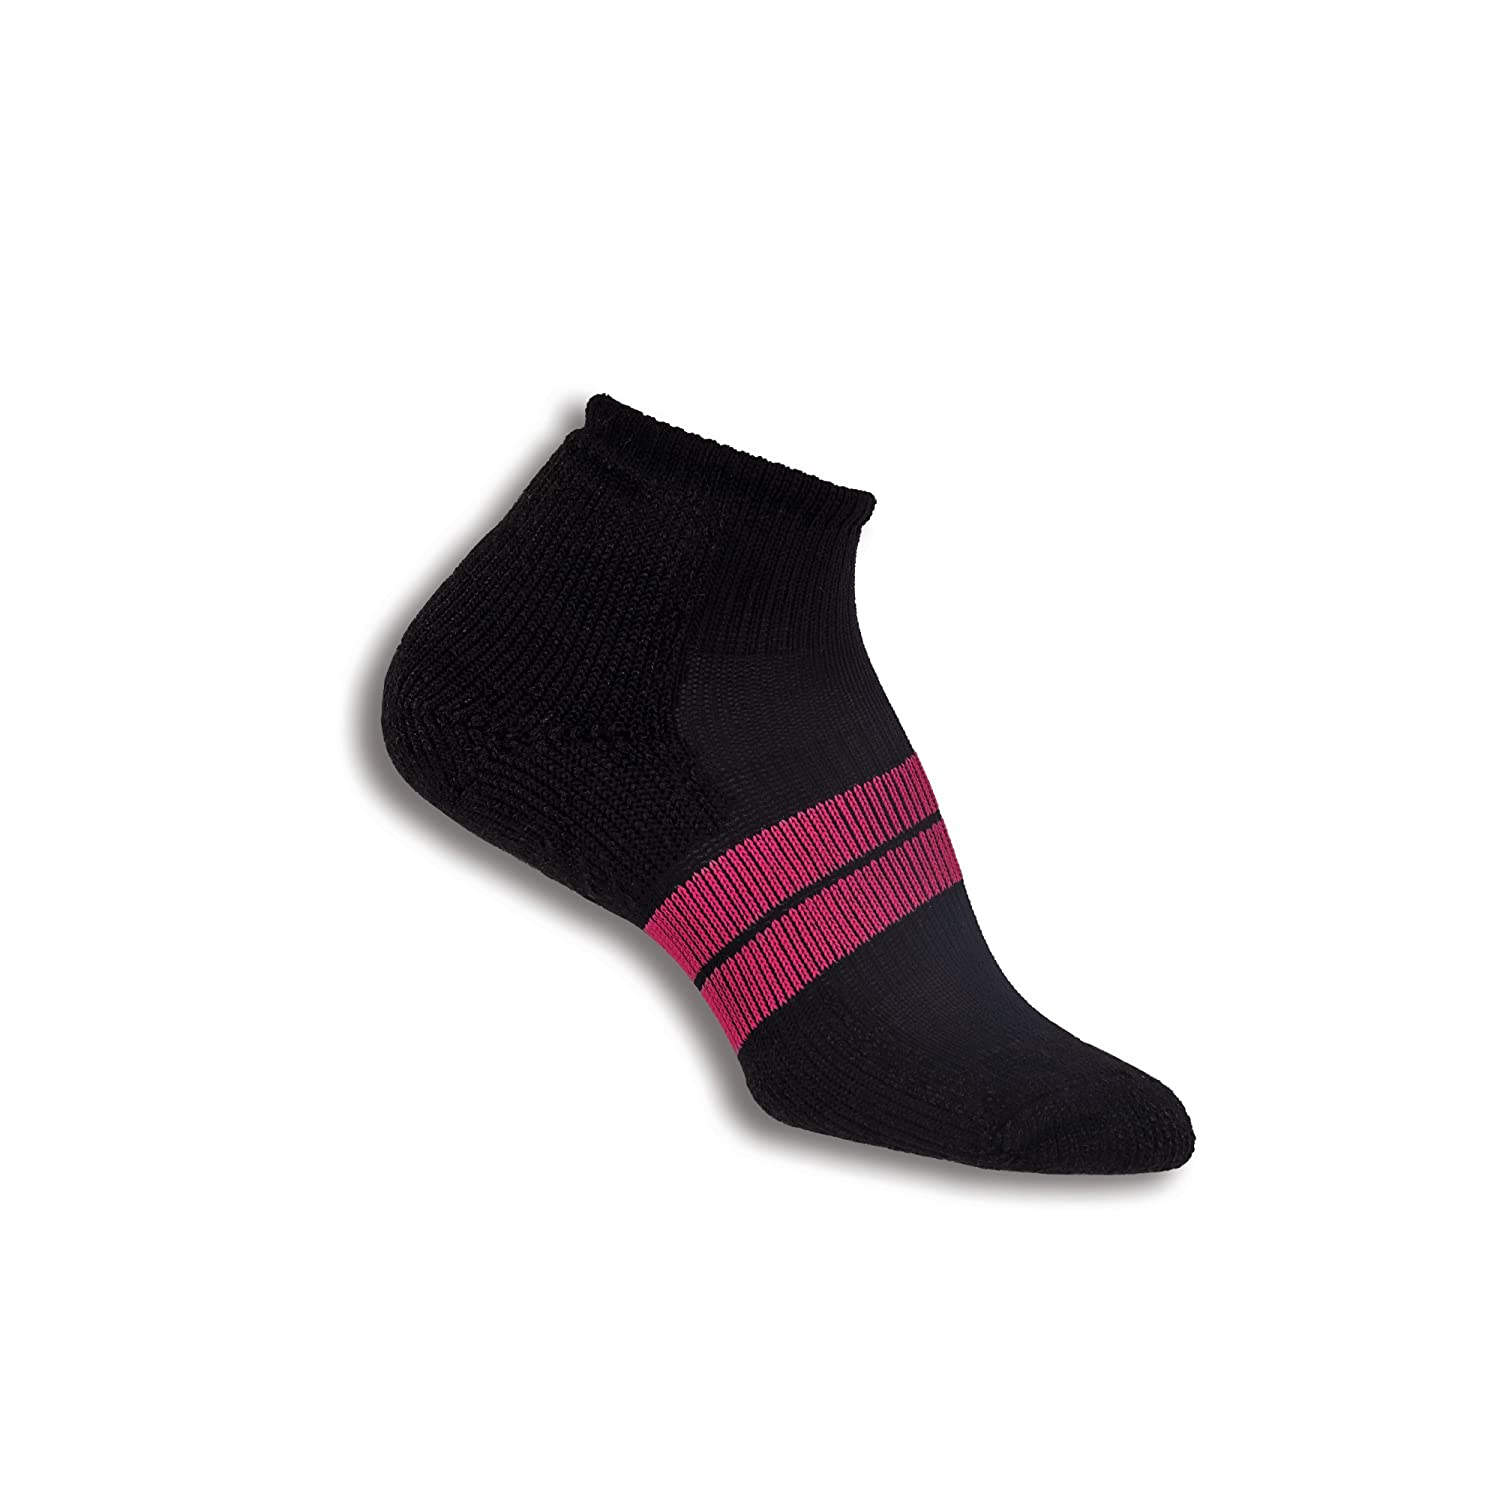 Thorlos Women's Thick Padded 84N Runner Socks Black Small Thorlo Inc. 84 NW